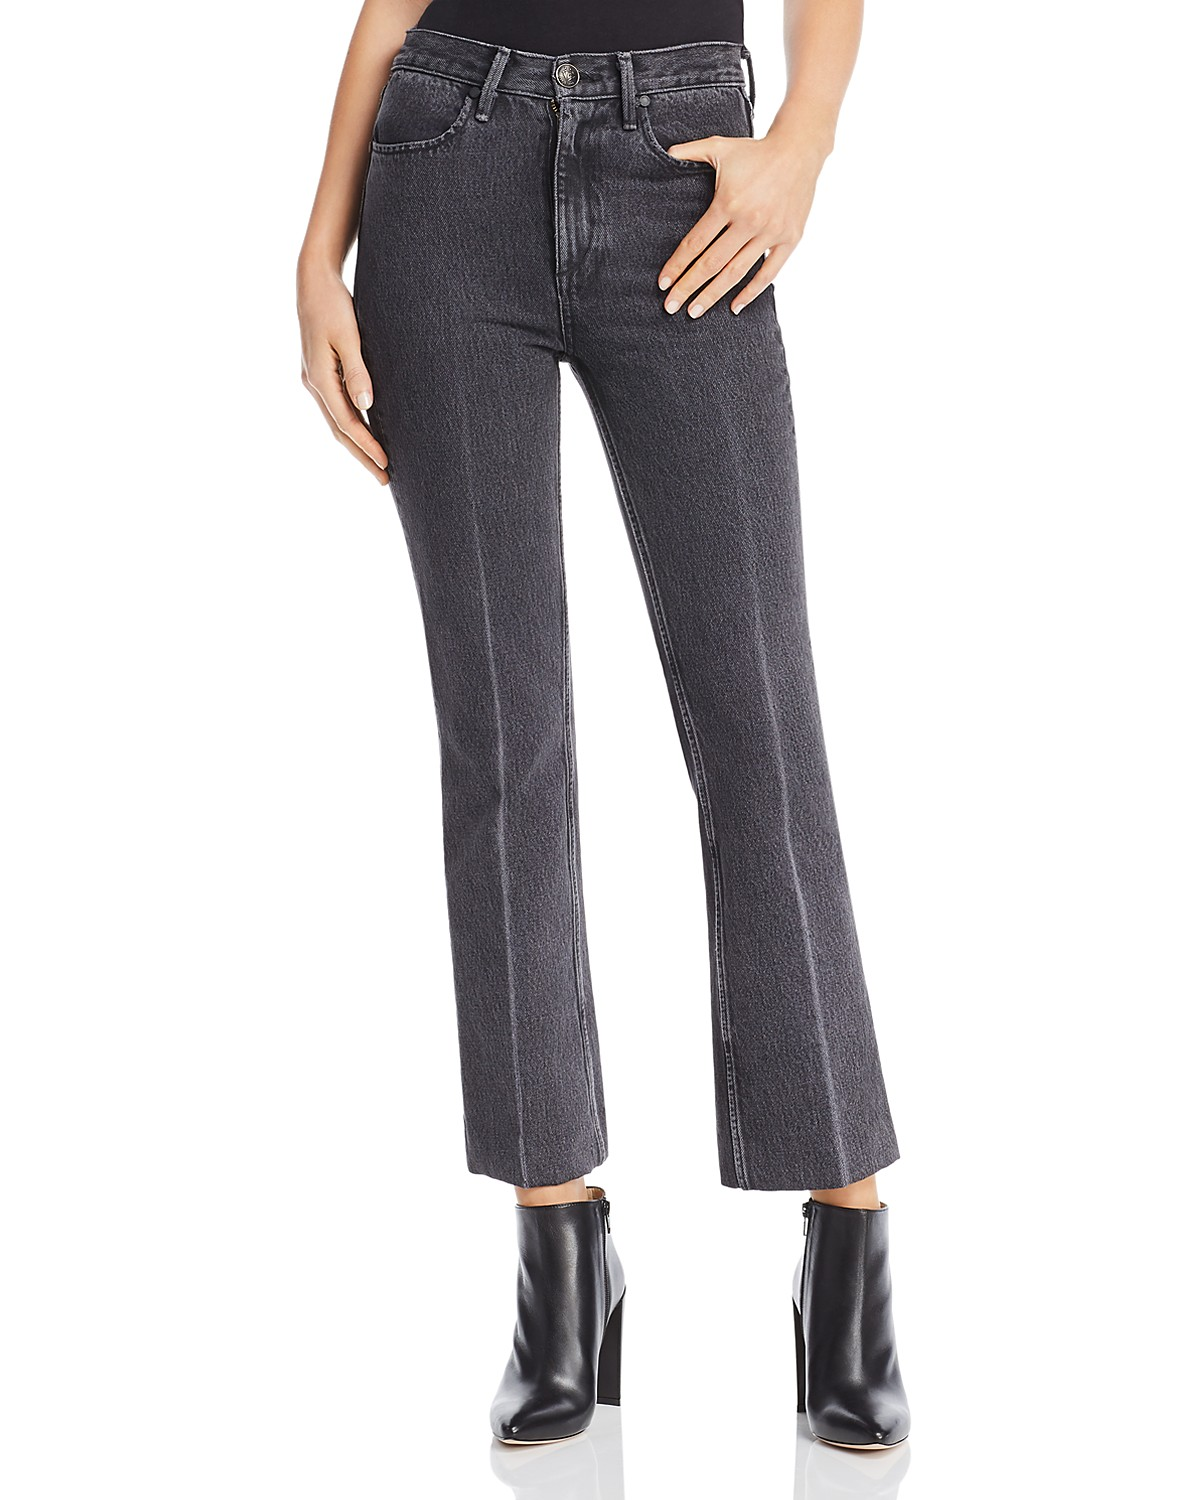 Dylan cropped trousers - Grey Rag & Bone tX5rC